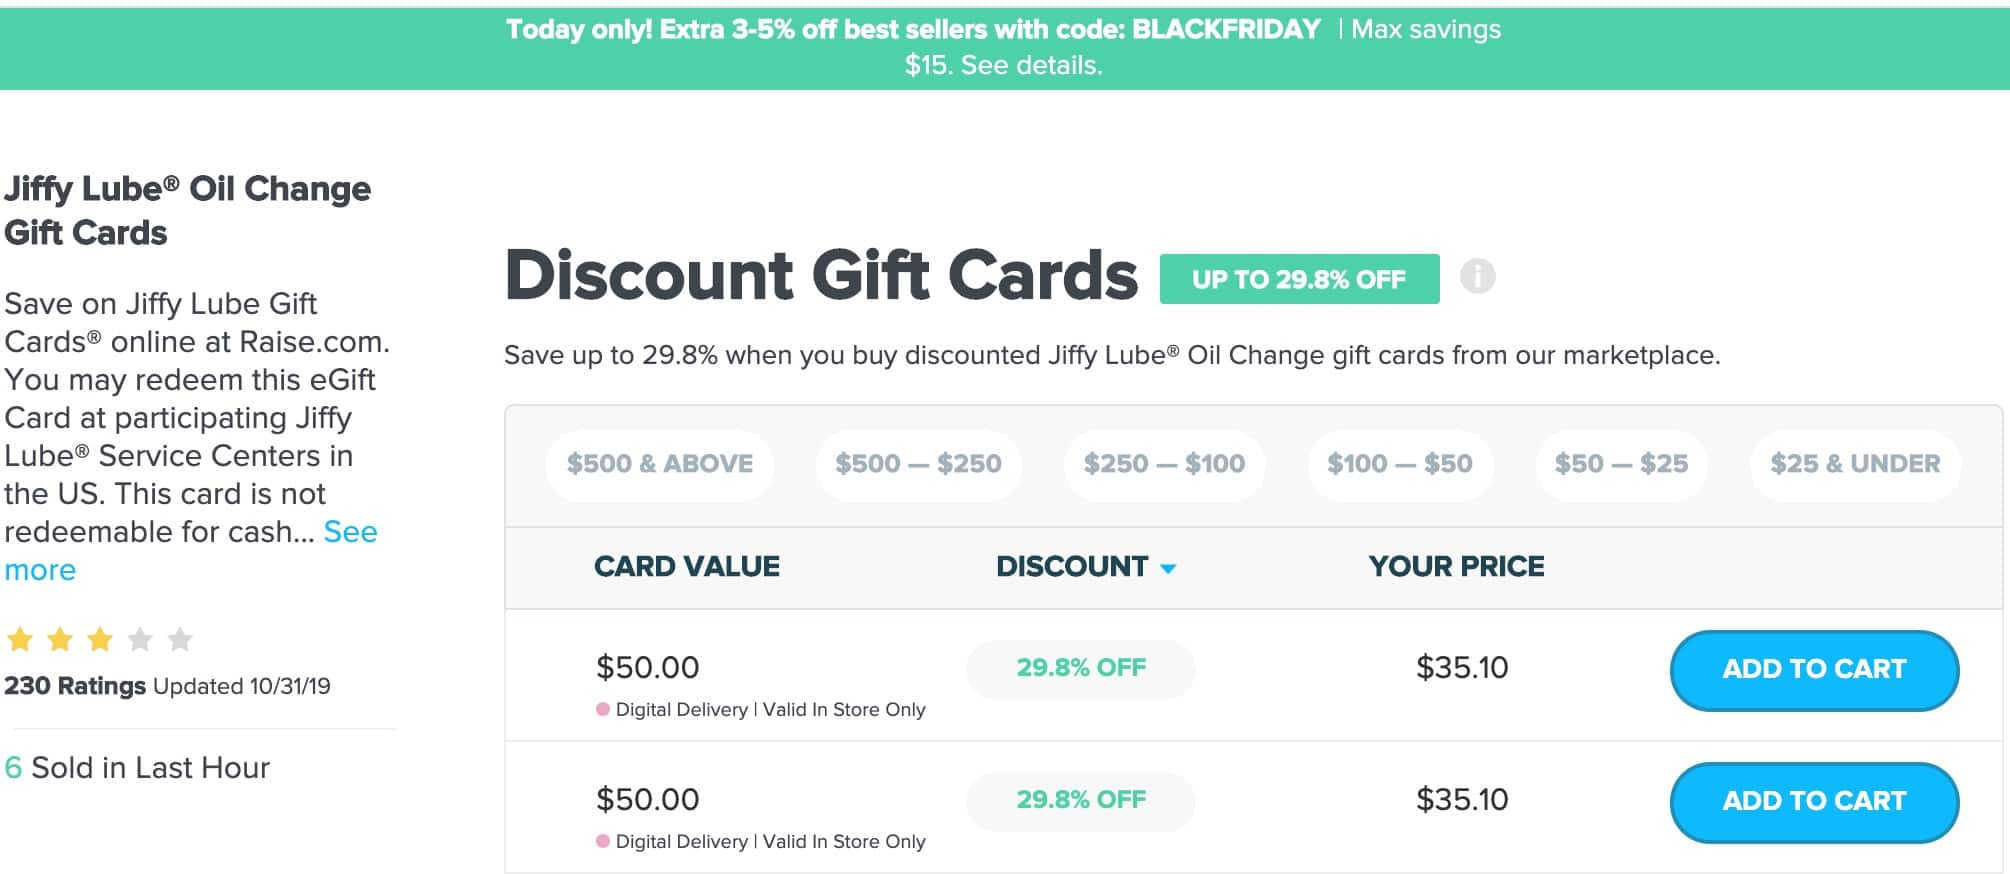 Raise.com : 30% Off Jiffy Lube Gift Cards + 5% off with code BLACKFRIDAY $33.5